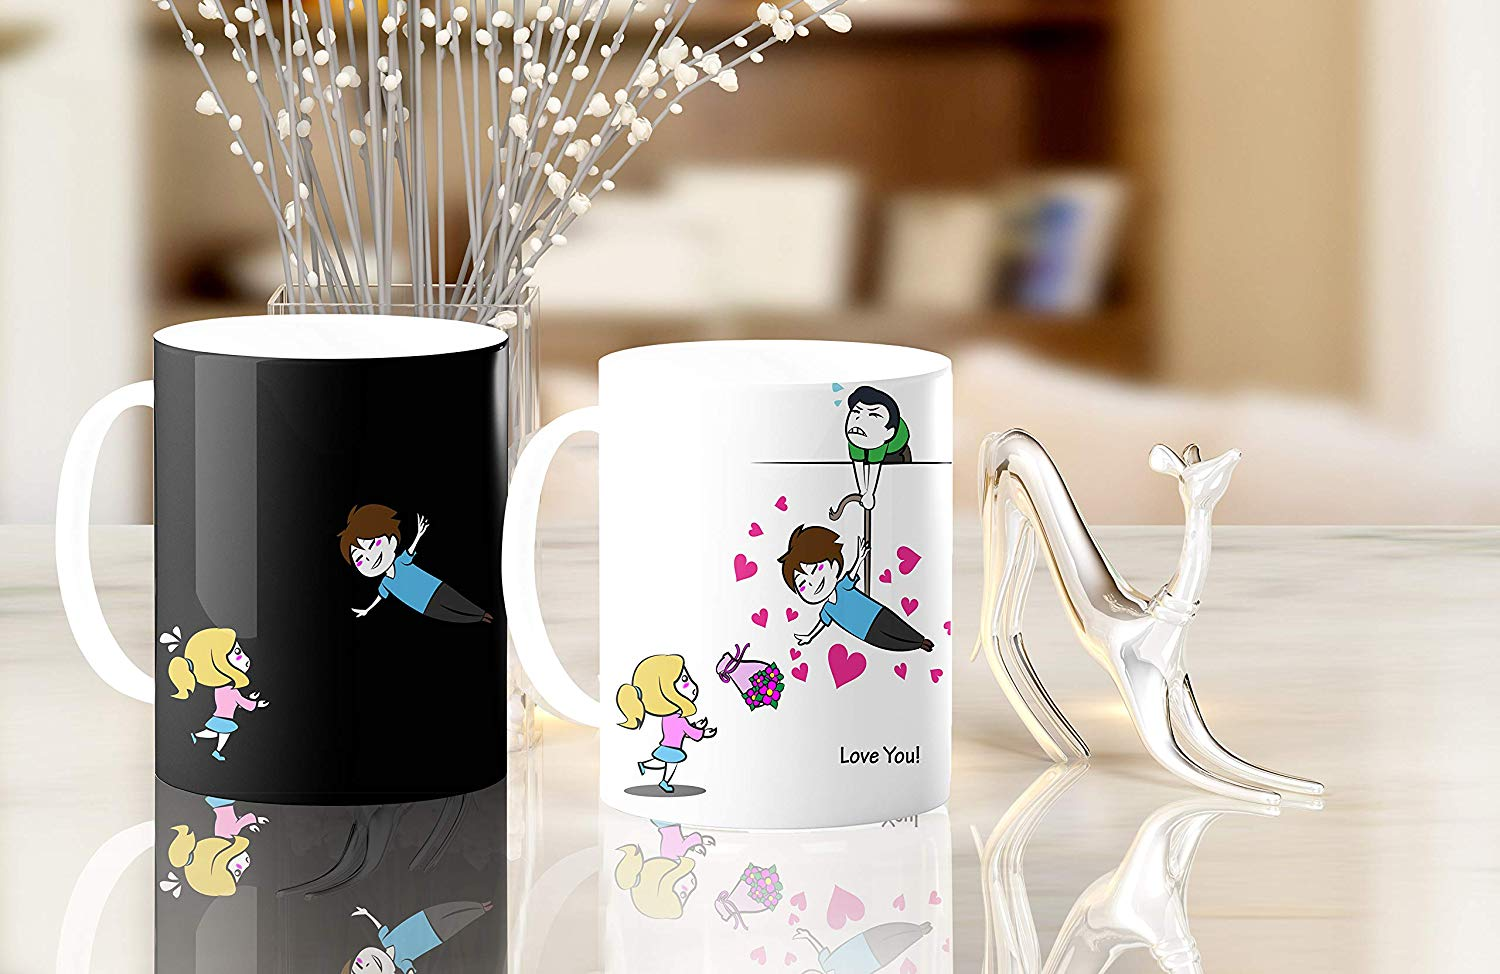 Heat Sensitive Color Changing Coffee Mug Funny Coffee Cup Flying Lovely Cartoon Couple Design Funny Gift Idea B07D21S68R 5